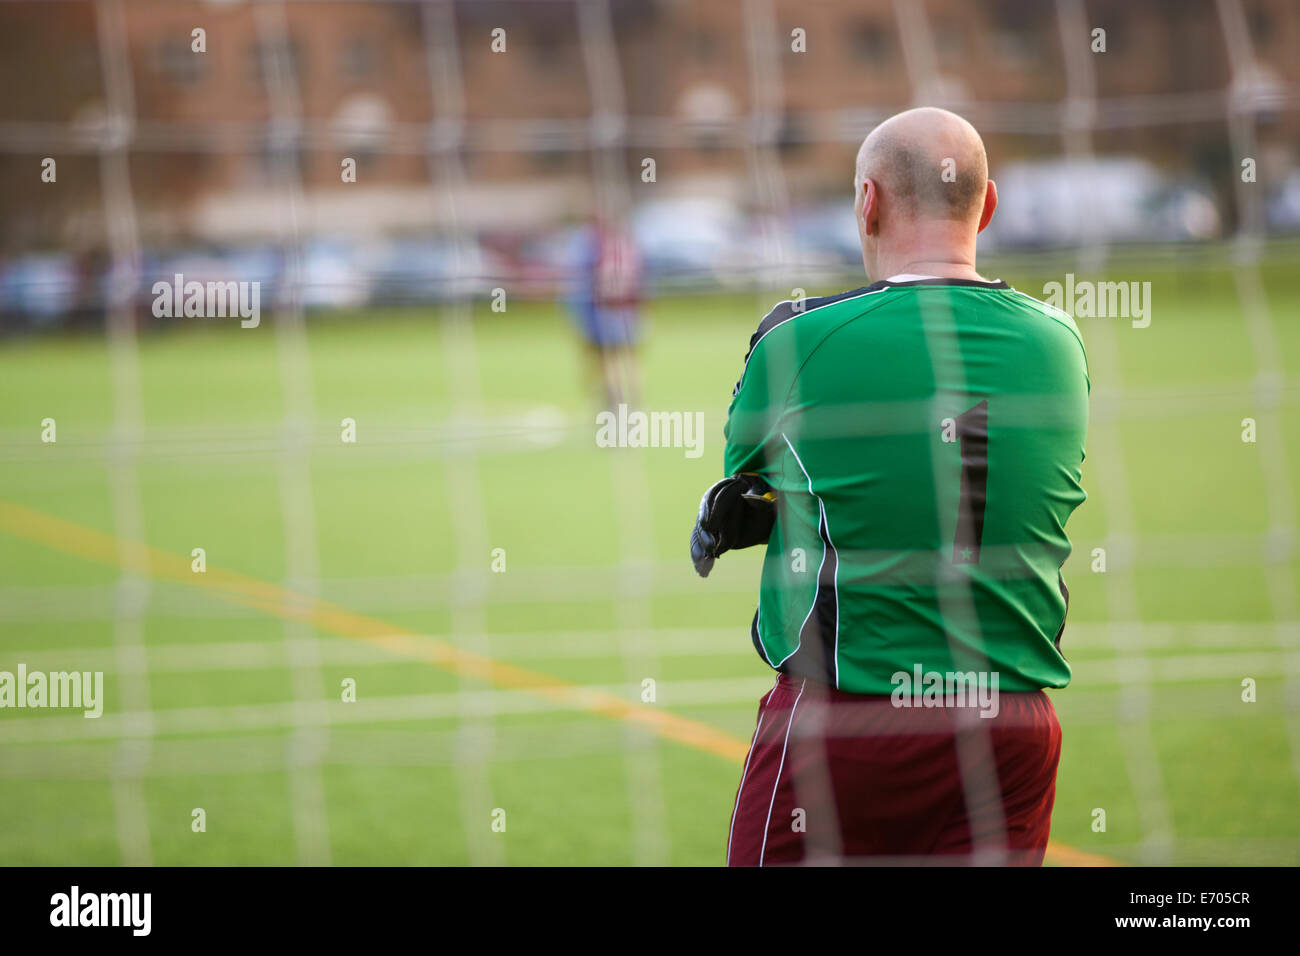 Rearview of goalie at football game Stock Photo